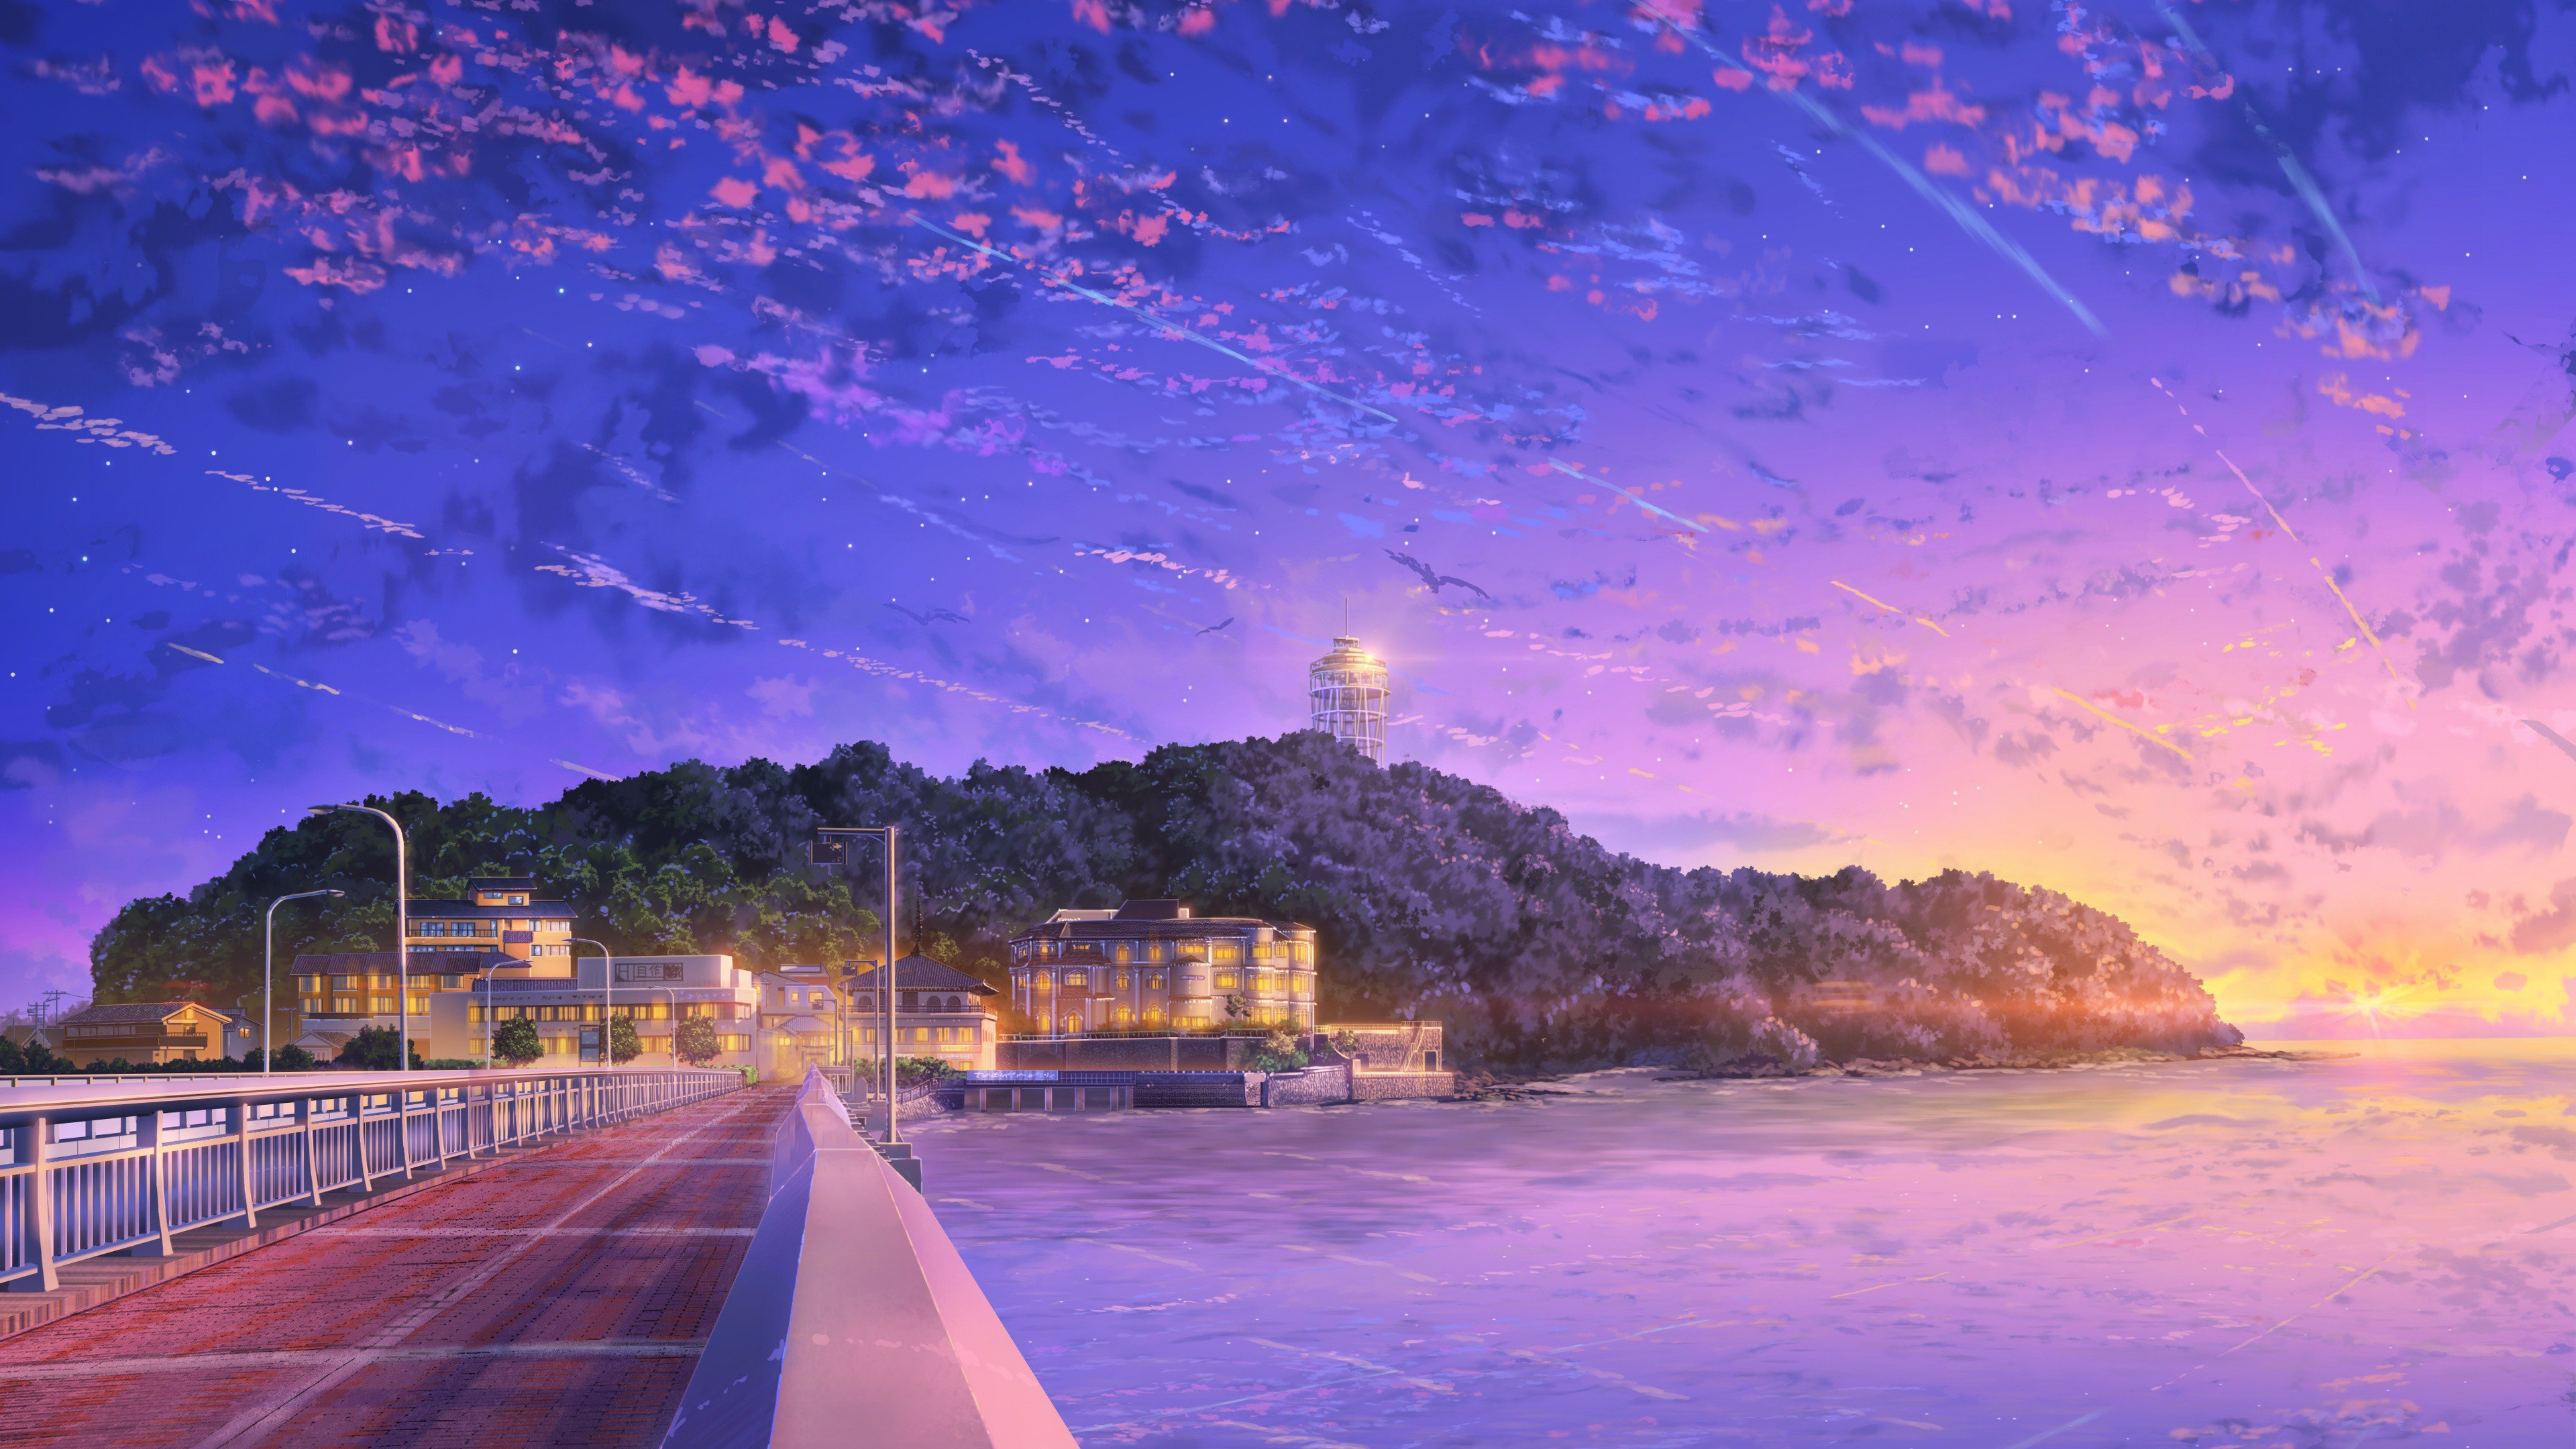 japan anime sky 1563222680 - Japan Anime Sky - sky wallpapers, japan wallpapers, hd-wallpapers, anime wallpapers, 4k-wallpapers